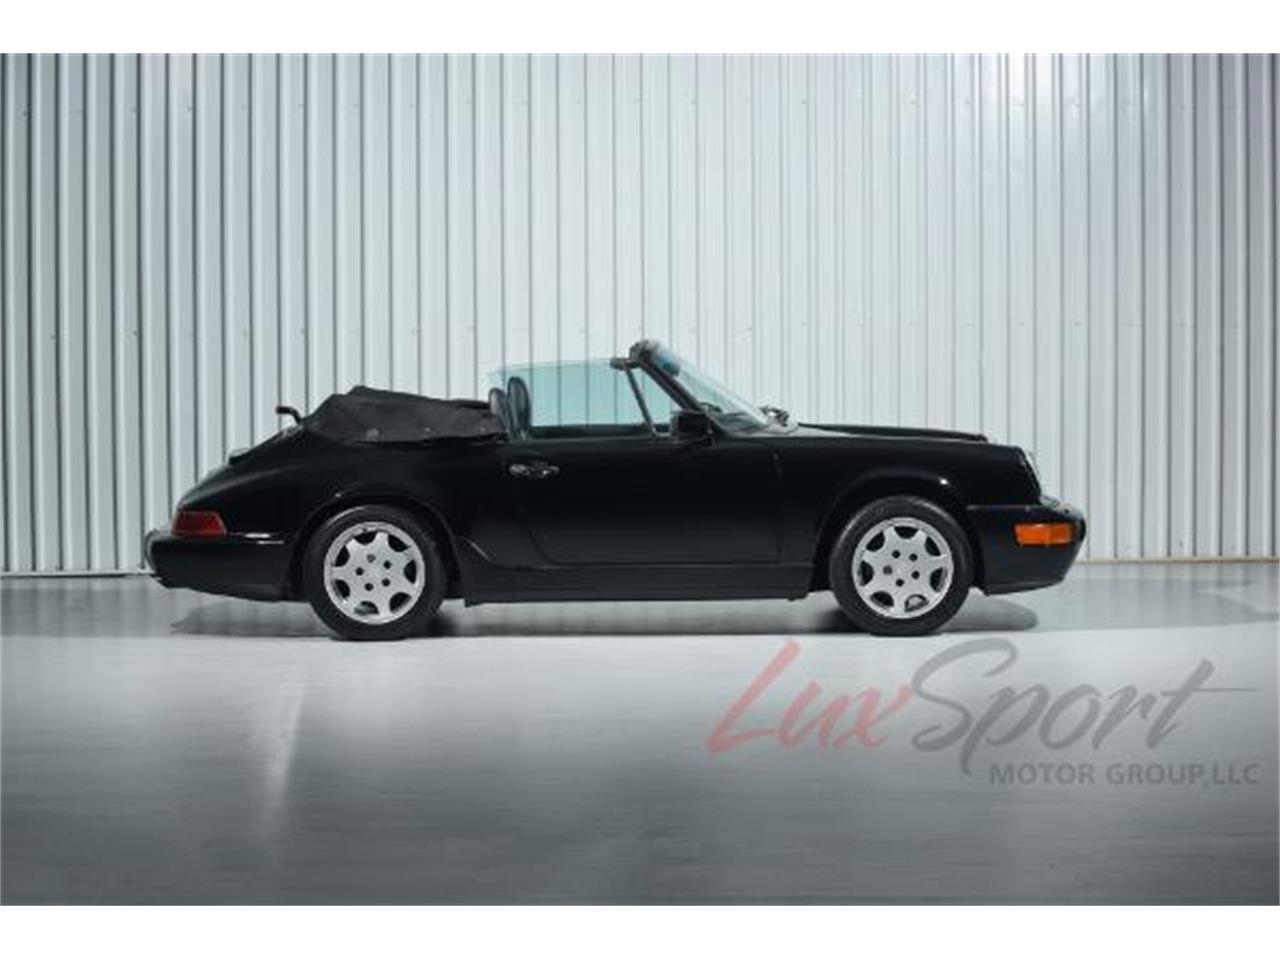 Large Picture of 1990 Porsche 964 Carrera 4 Cabriolet located in New Hyde Park New York - $39,995.00 Offered by LuxSport Motor Group, LLC - MGT0